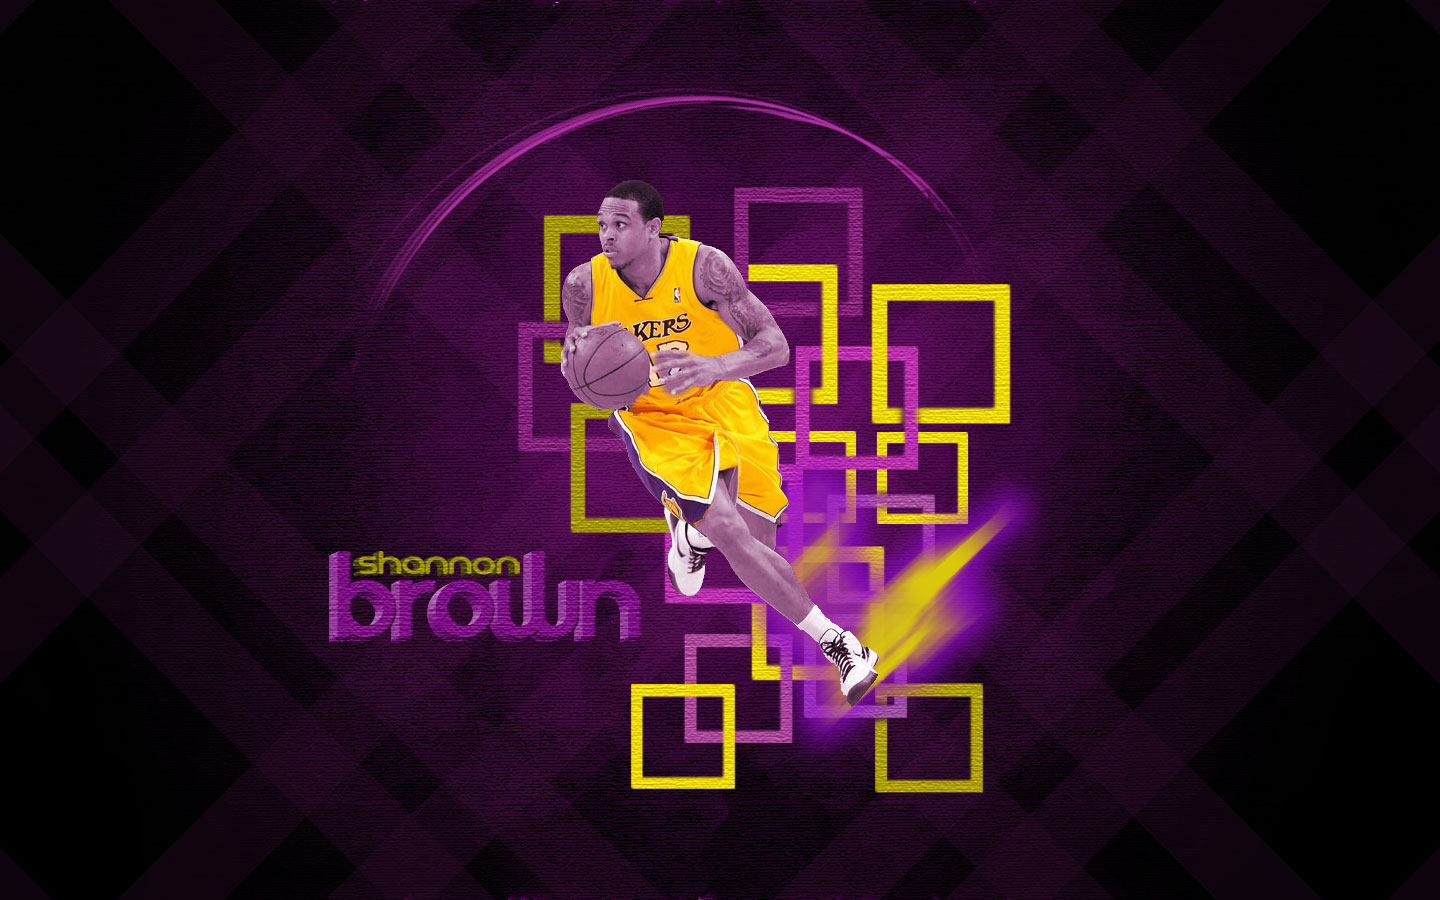 http://3.bp.blogspot.com/_0_IbsH3Iw48/TNxDP90LVXI/AAAAAAAADIg/LpHYJnmKd0I/s1600/Shannon-Brown-LA-Lakers-Widescreen-Wallpaper.jpg